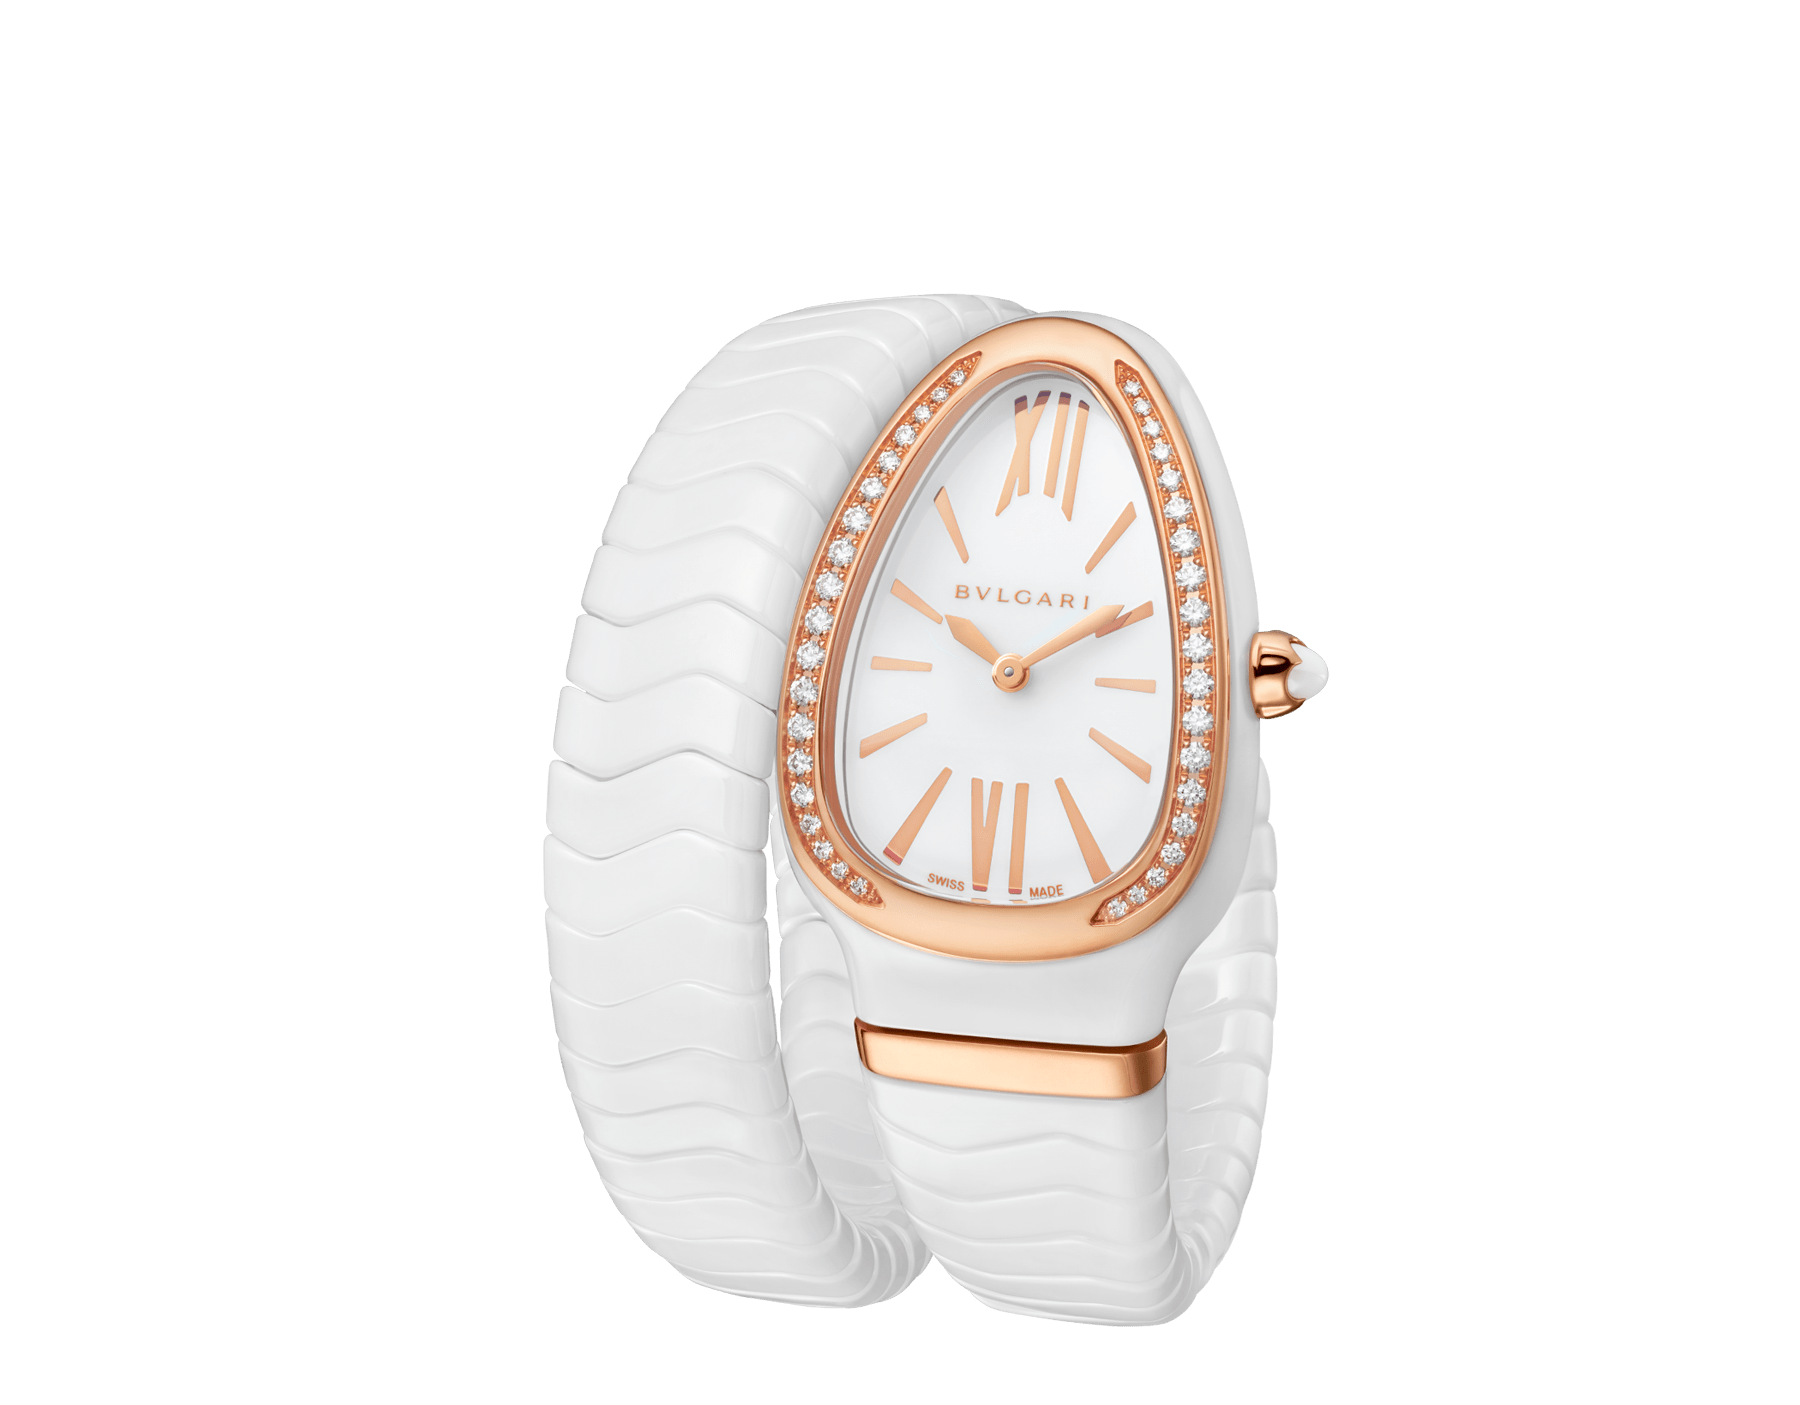 Serpenti Spiga single spiral watch with white ceramic case, 18 kt rose gold bezel set with brilliant cut diamonds, white lacquered dial, white ceramic bracelet with 18 kt rose gold elements. 102613 image 2